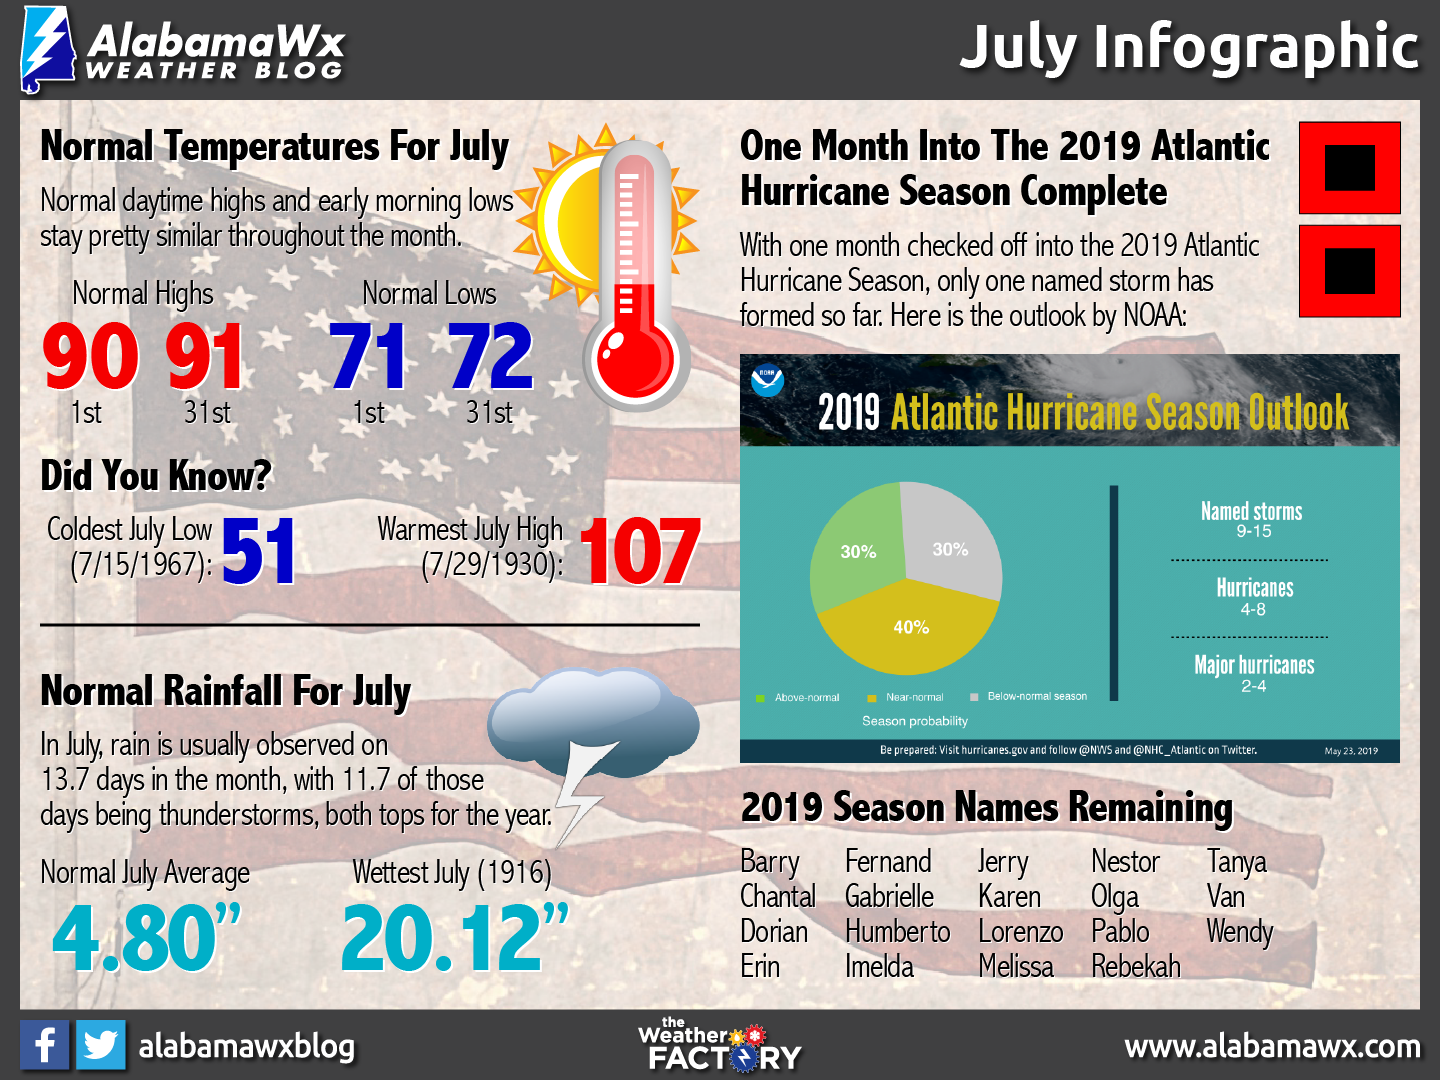 July Infographic by AlabamaWx's Scott Martin